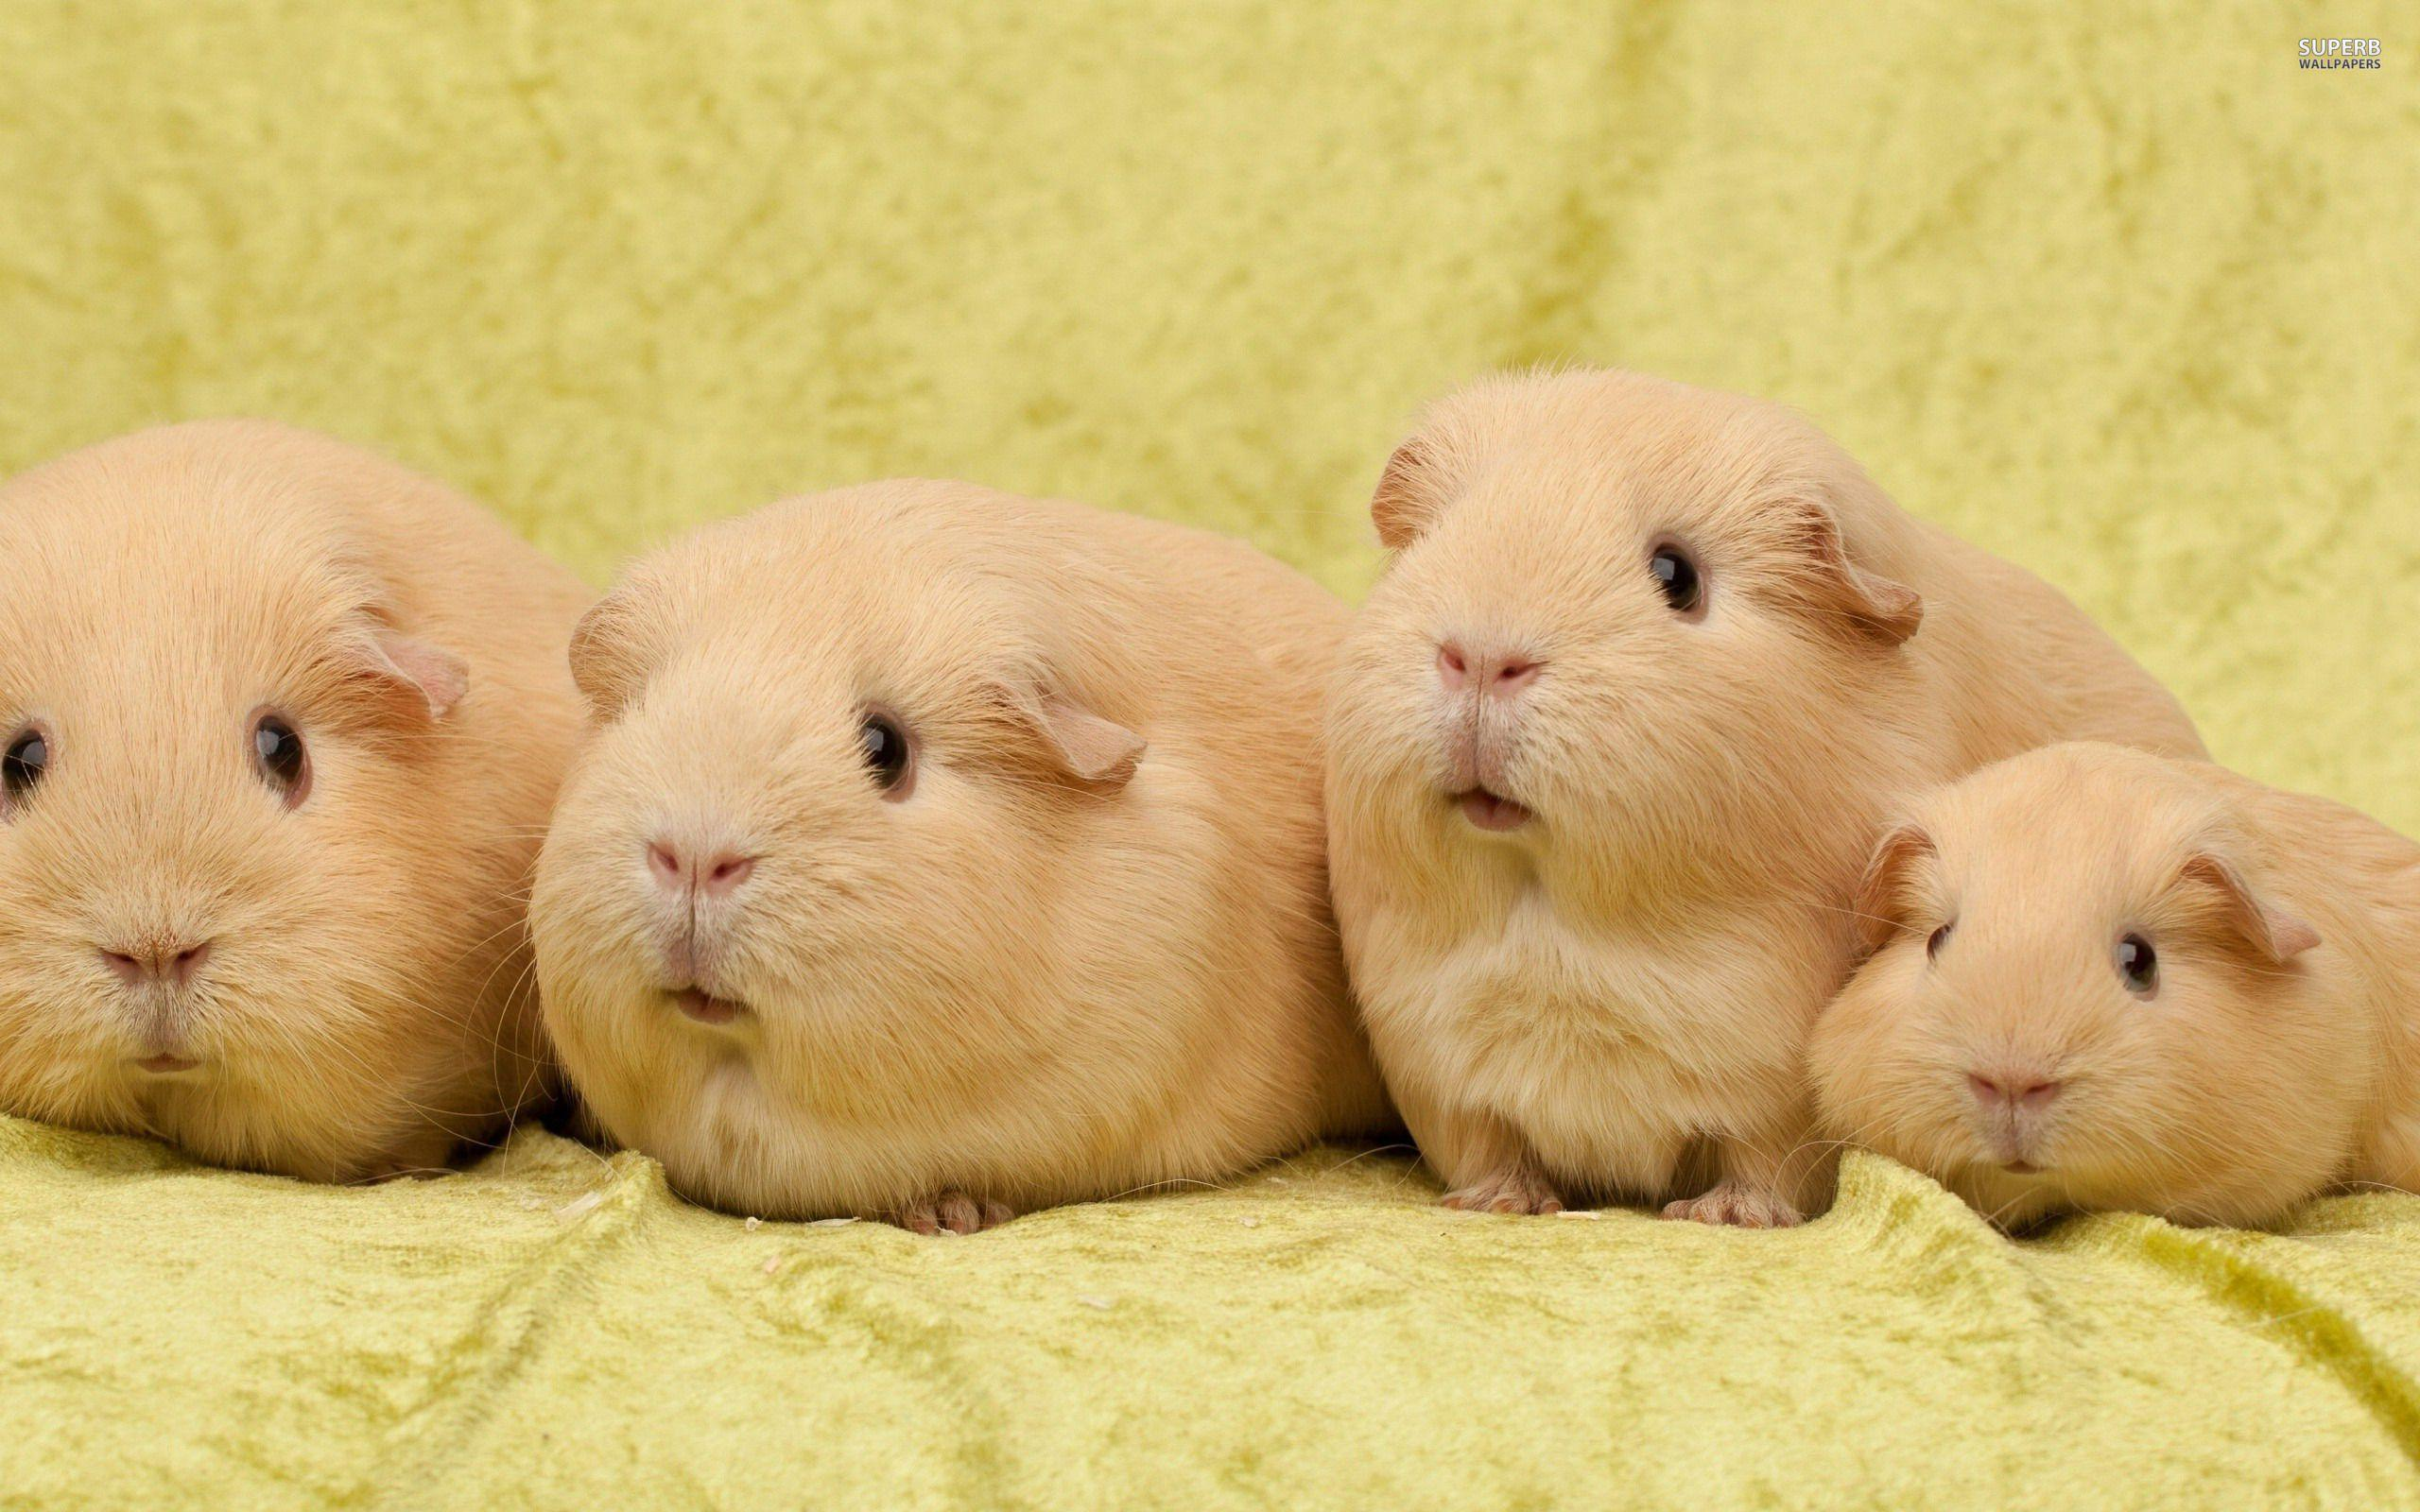 Guinea Pig Wallpapers 2560x1600